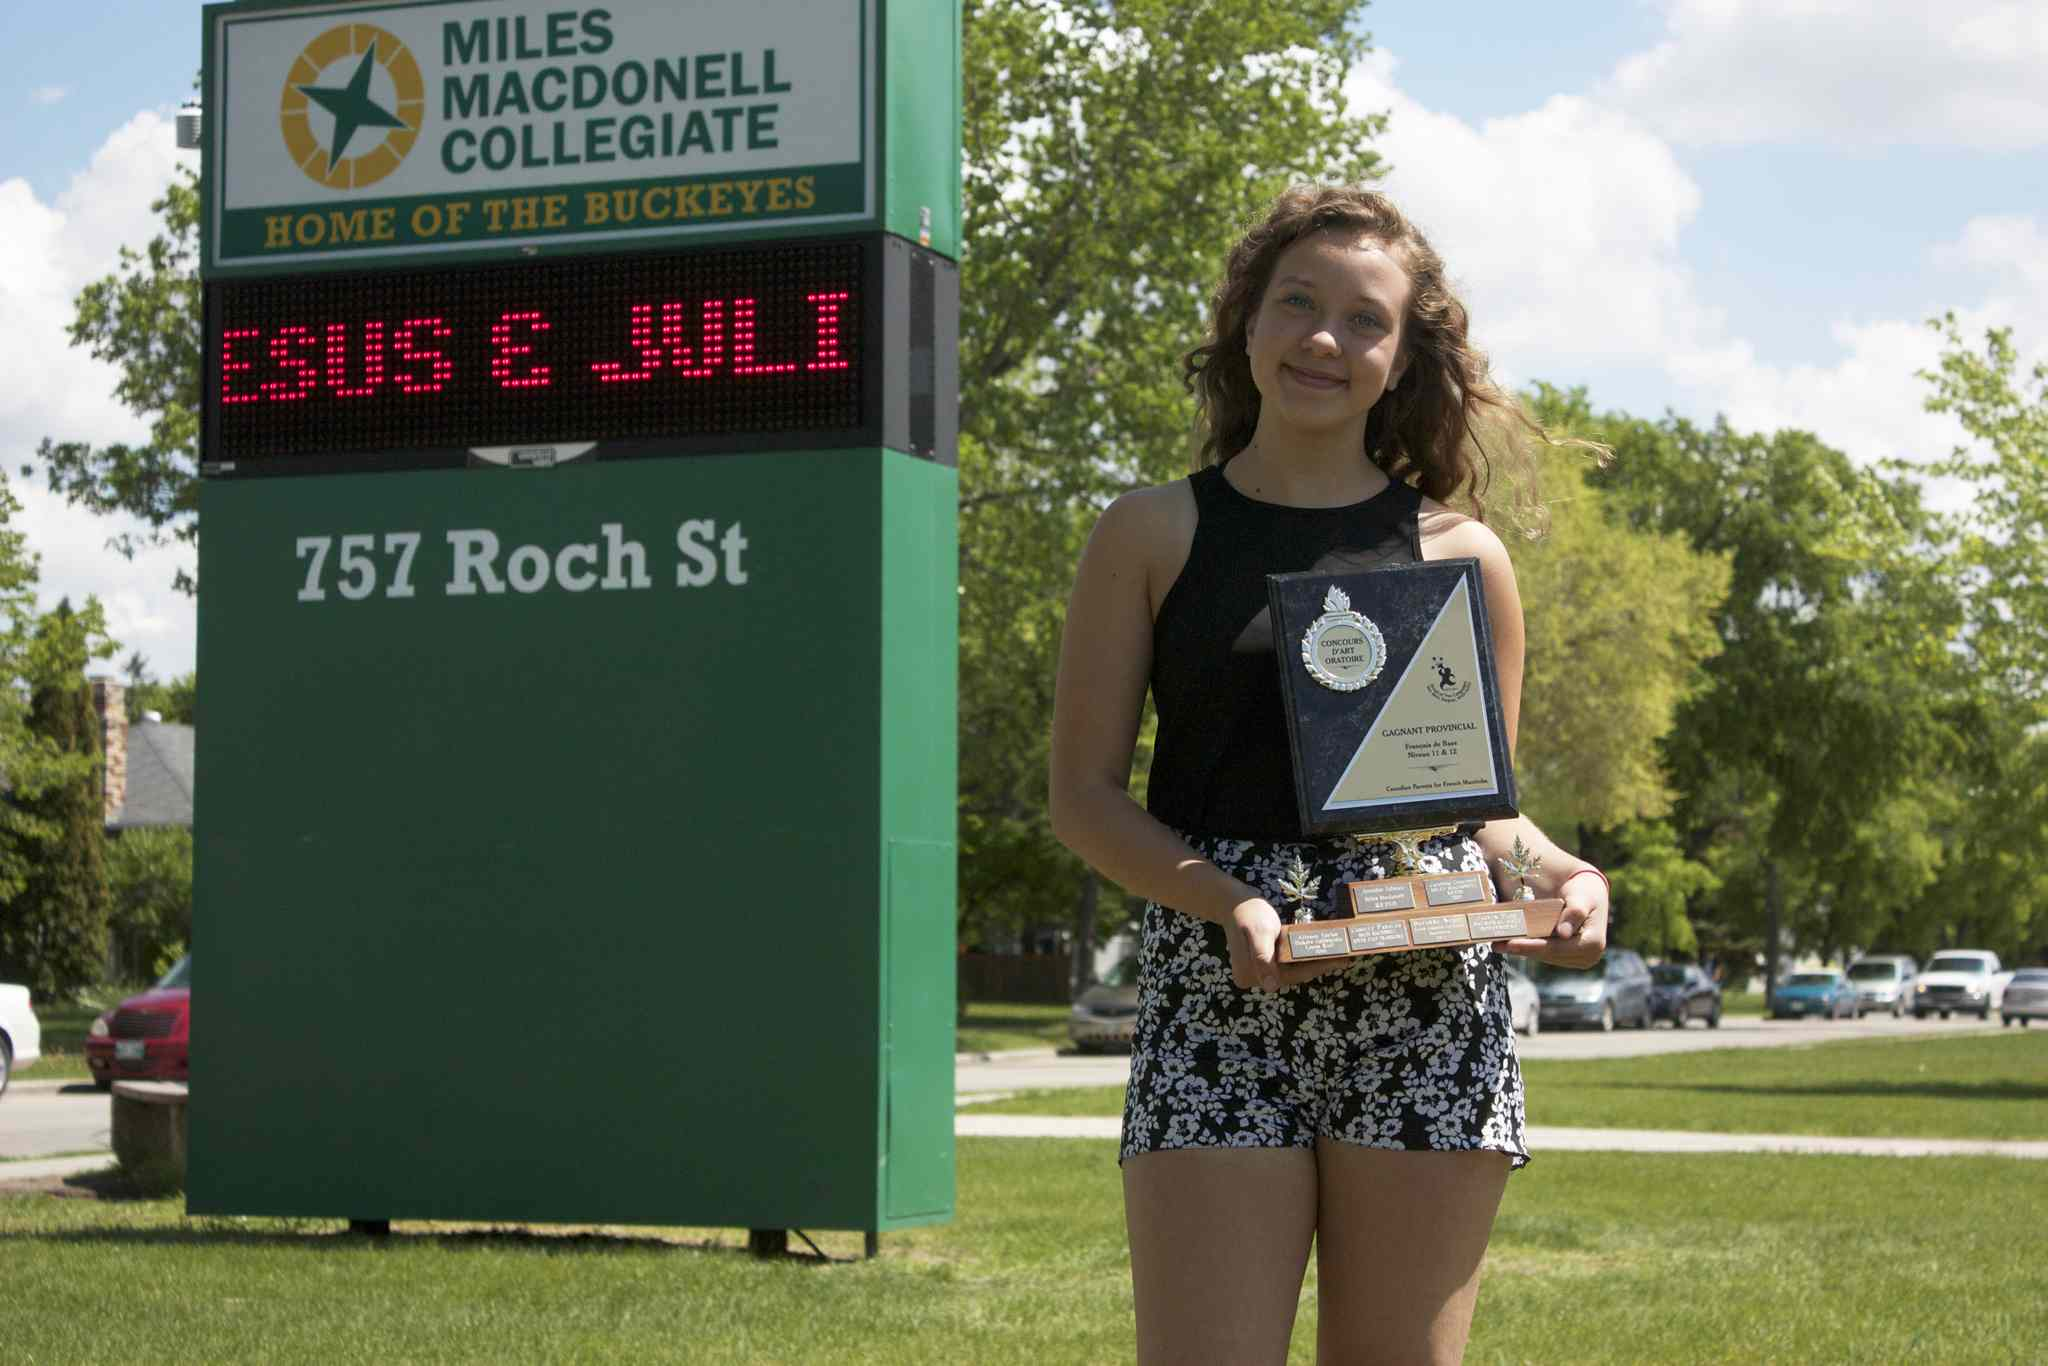 Miles Macdonell Grade 11 student Kayla Peters is shown with the trophy from the provincial Concours d'art oratoire at the school. Peters also finished second at the national competition in Charlottetown, P.E.I. last month.